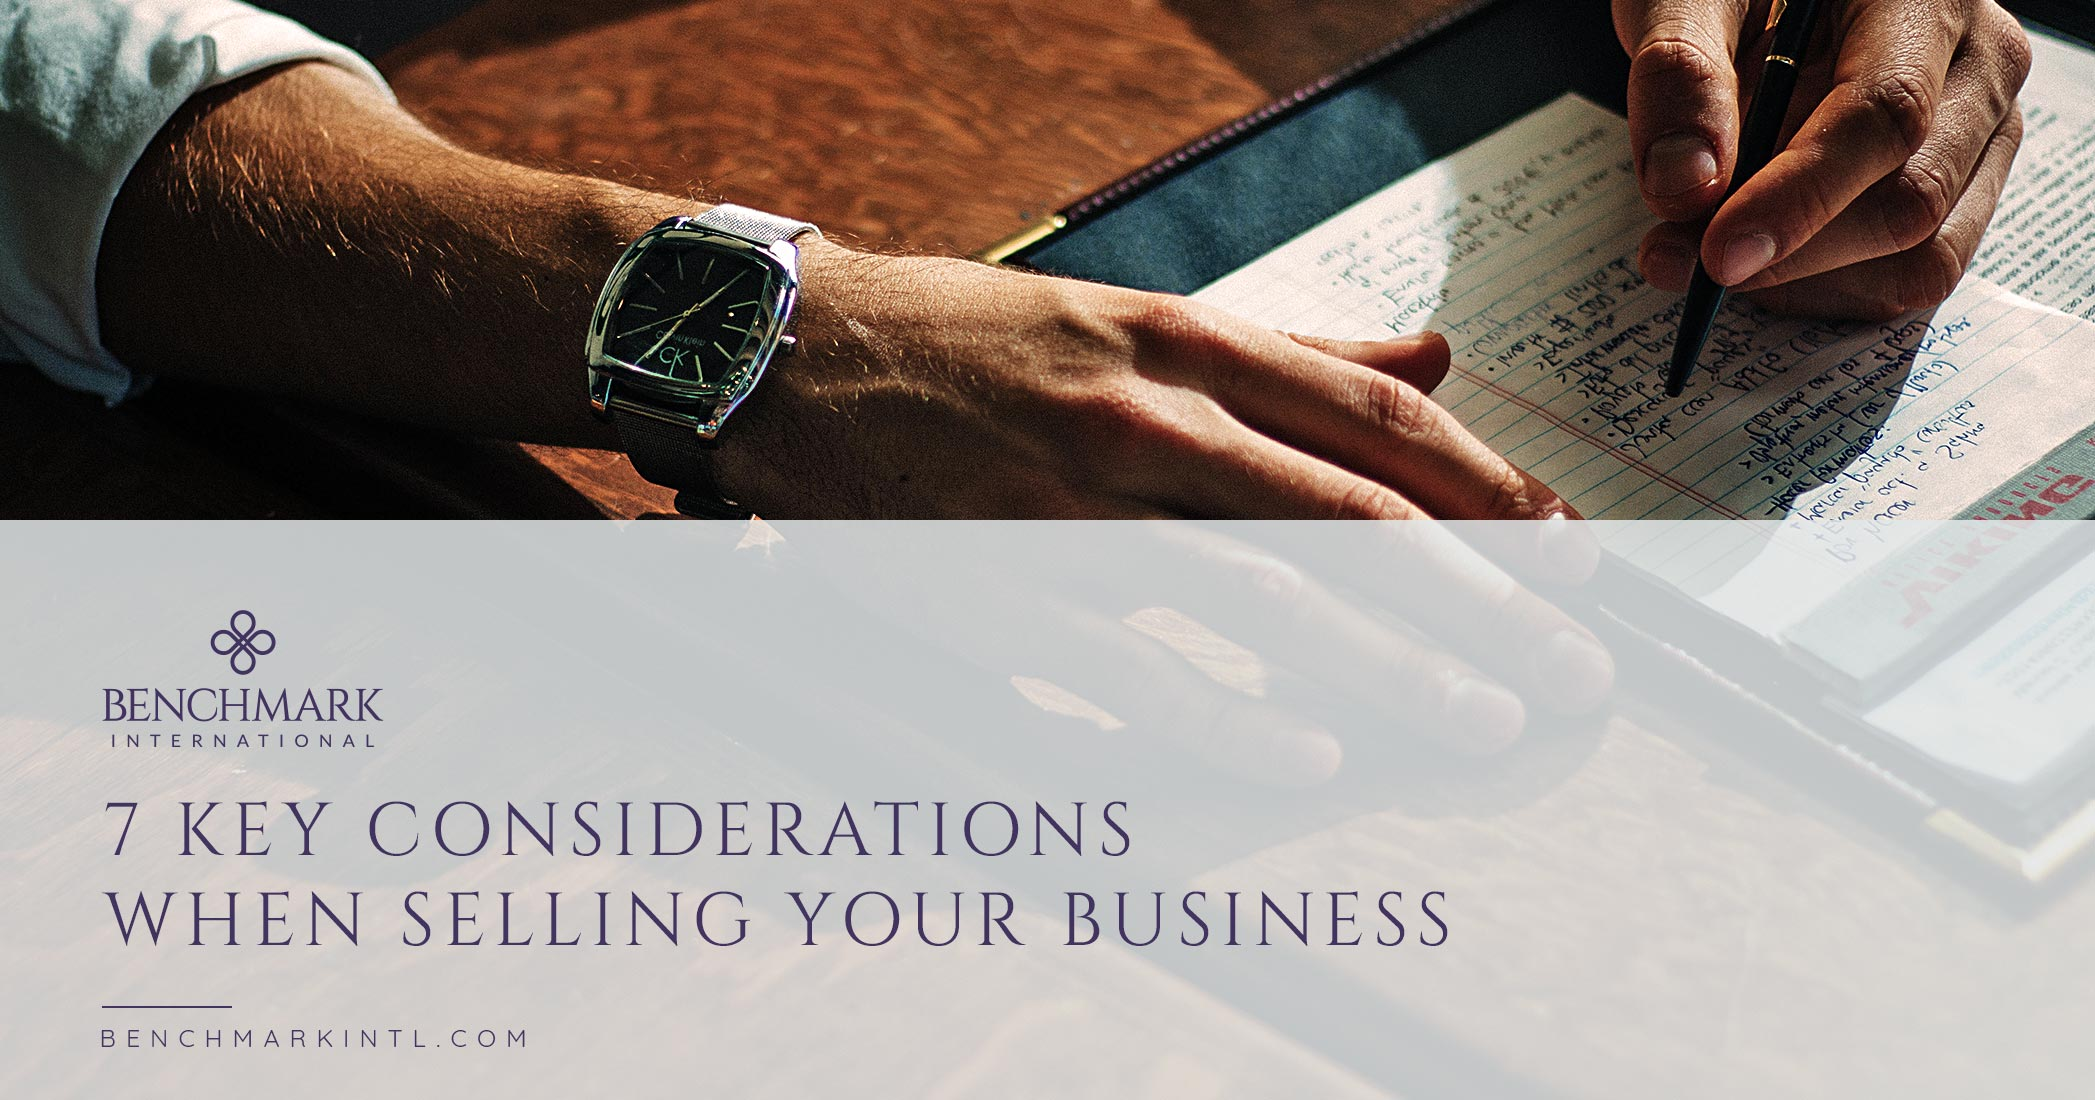 7 Key Considerations When Selling Your Business